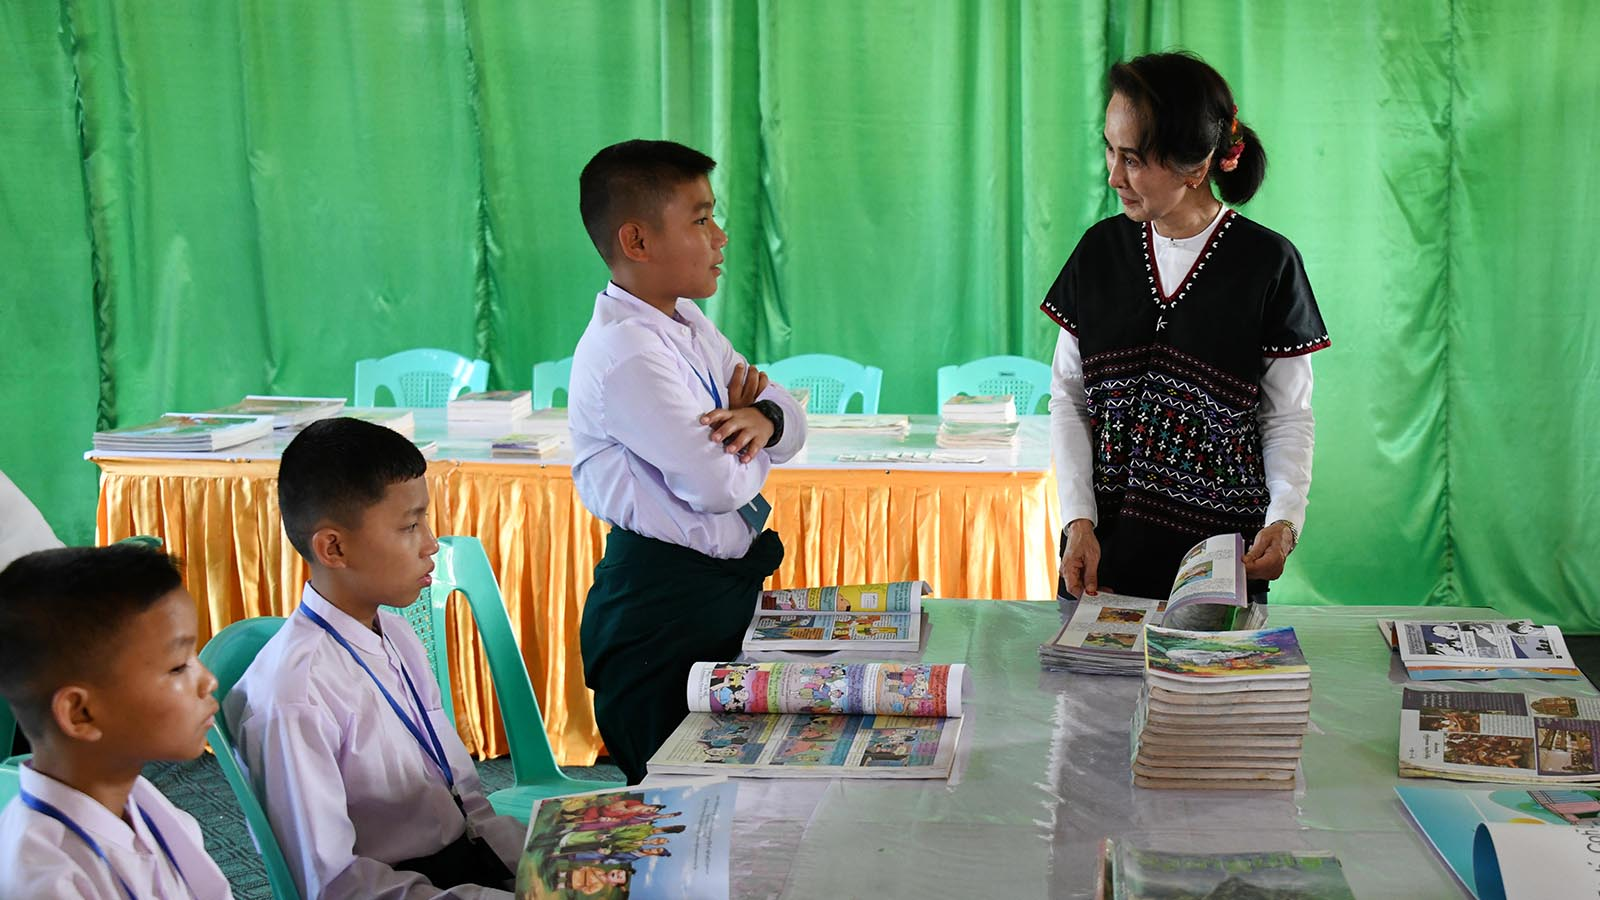 State Counsellor Daw Aung San Suu Kyi chats with students from the training school for the development of national races in Kya-in-Seikkyi, Kayin State yesterday.Photo: MNA